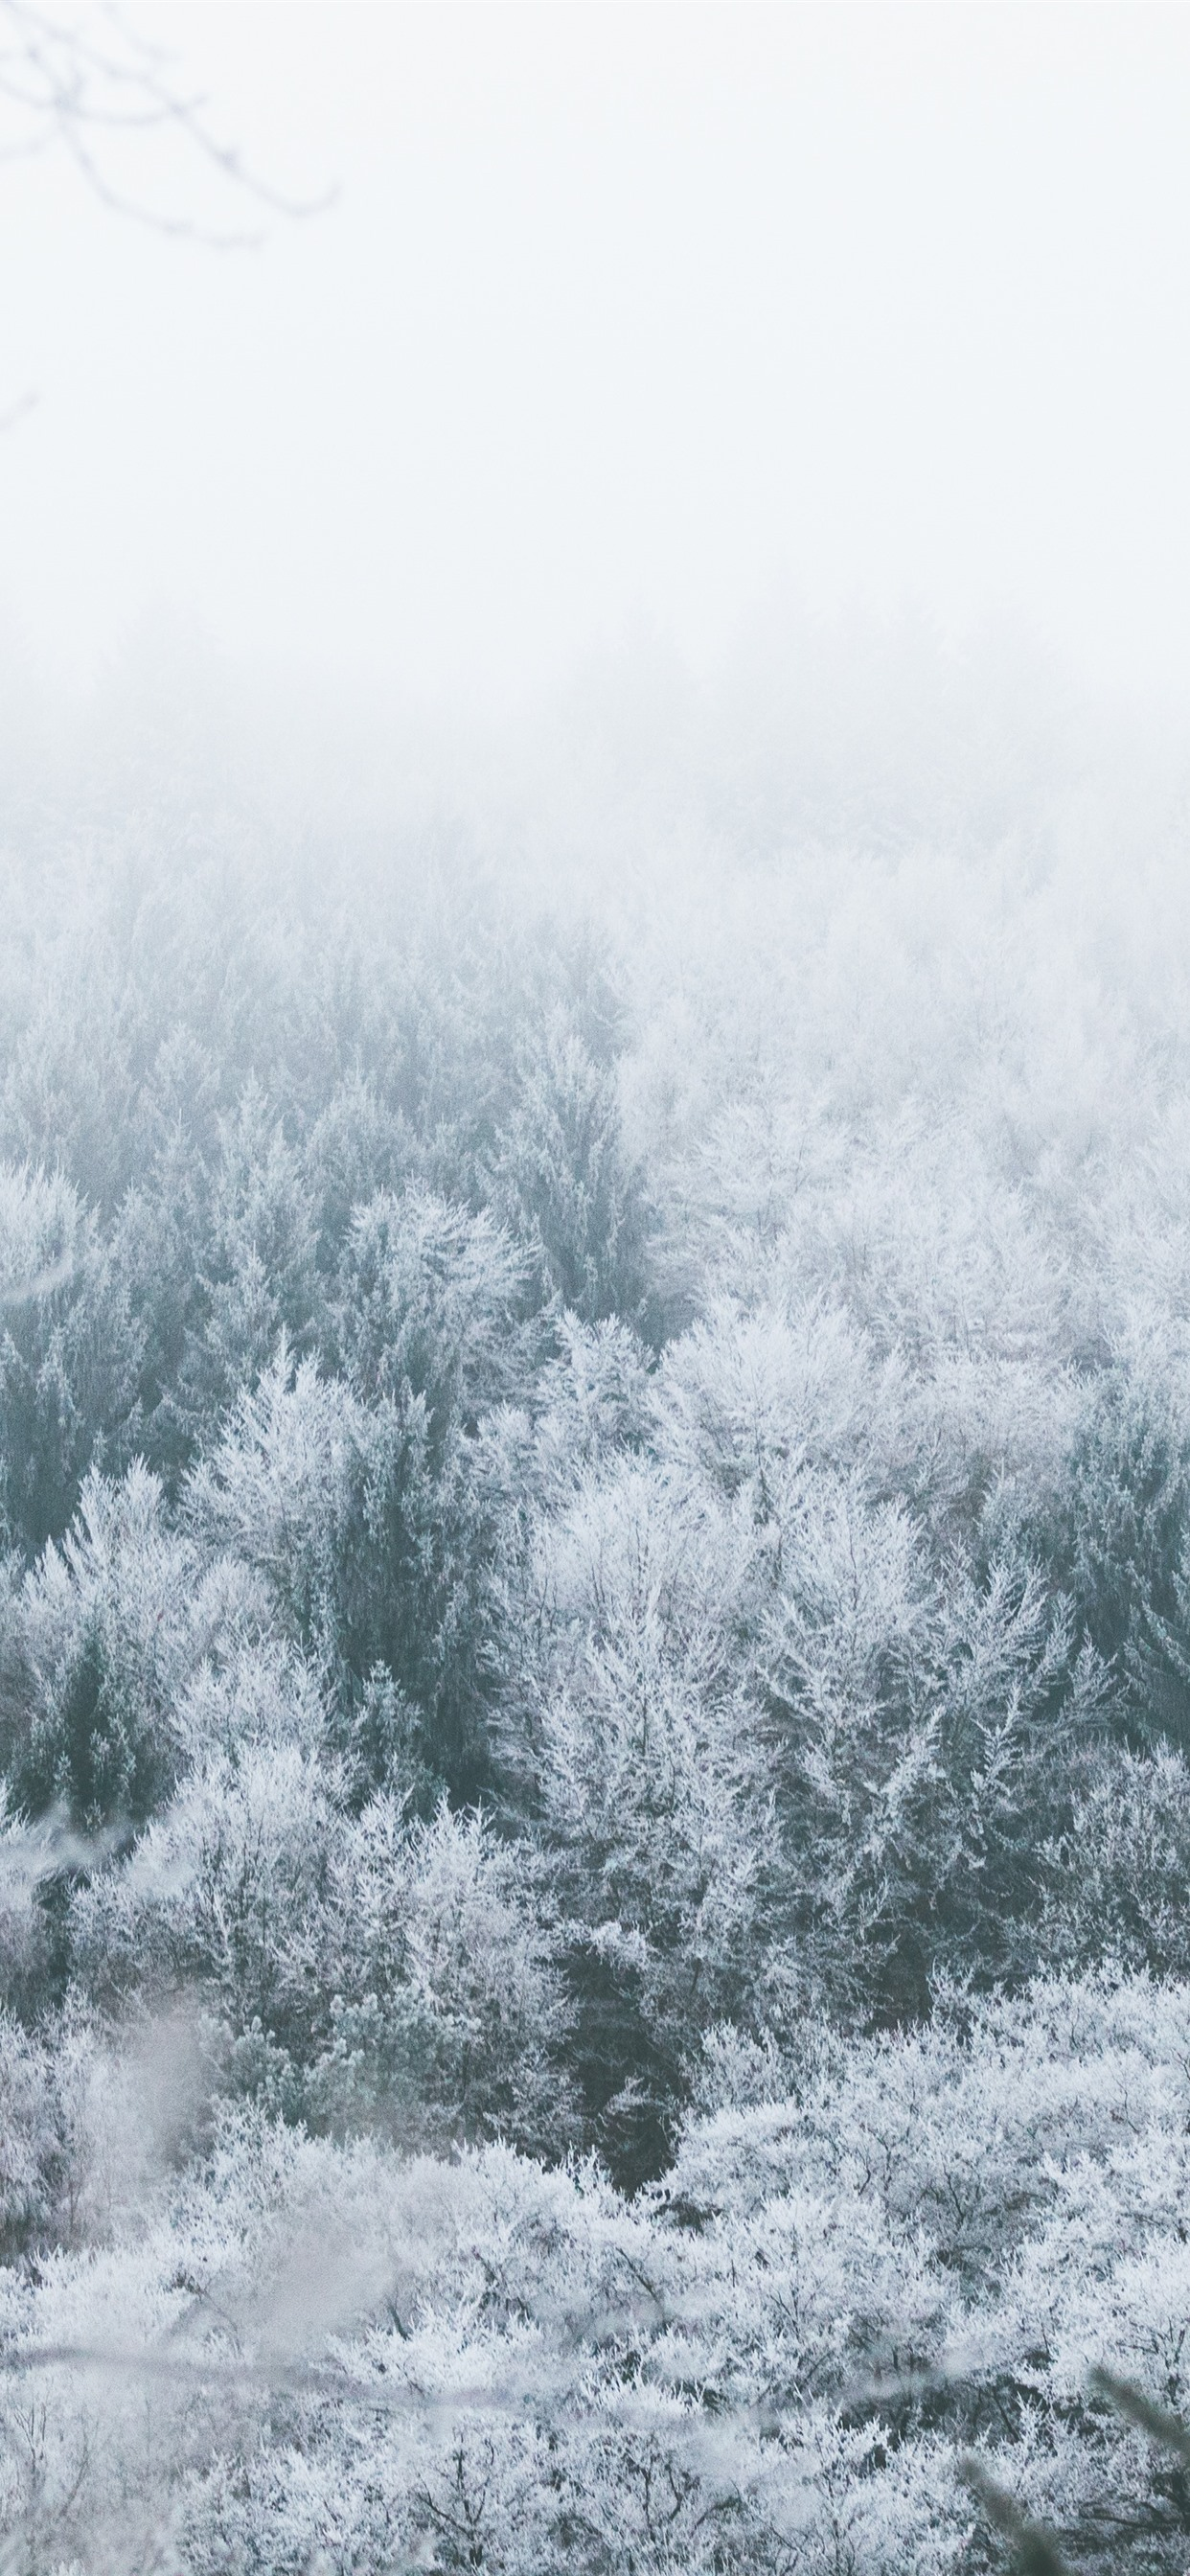 Trees Frost Winter Snow Fog 1242x2688 Iphone 11 Pro Xs Max Wallpaper Background Picture Image